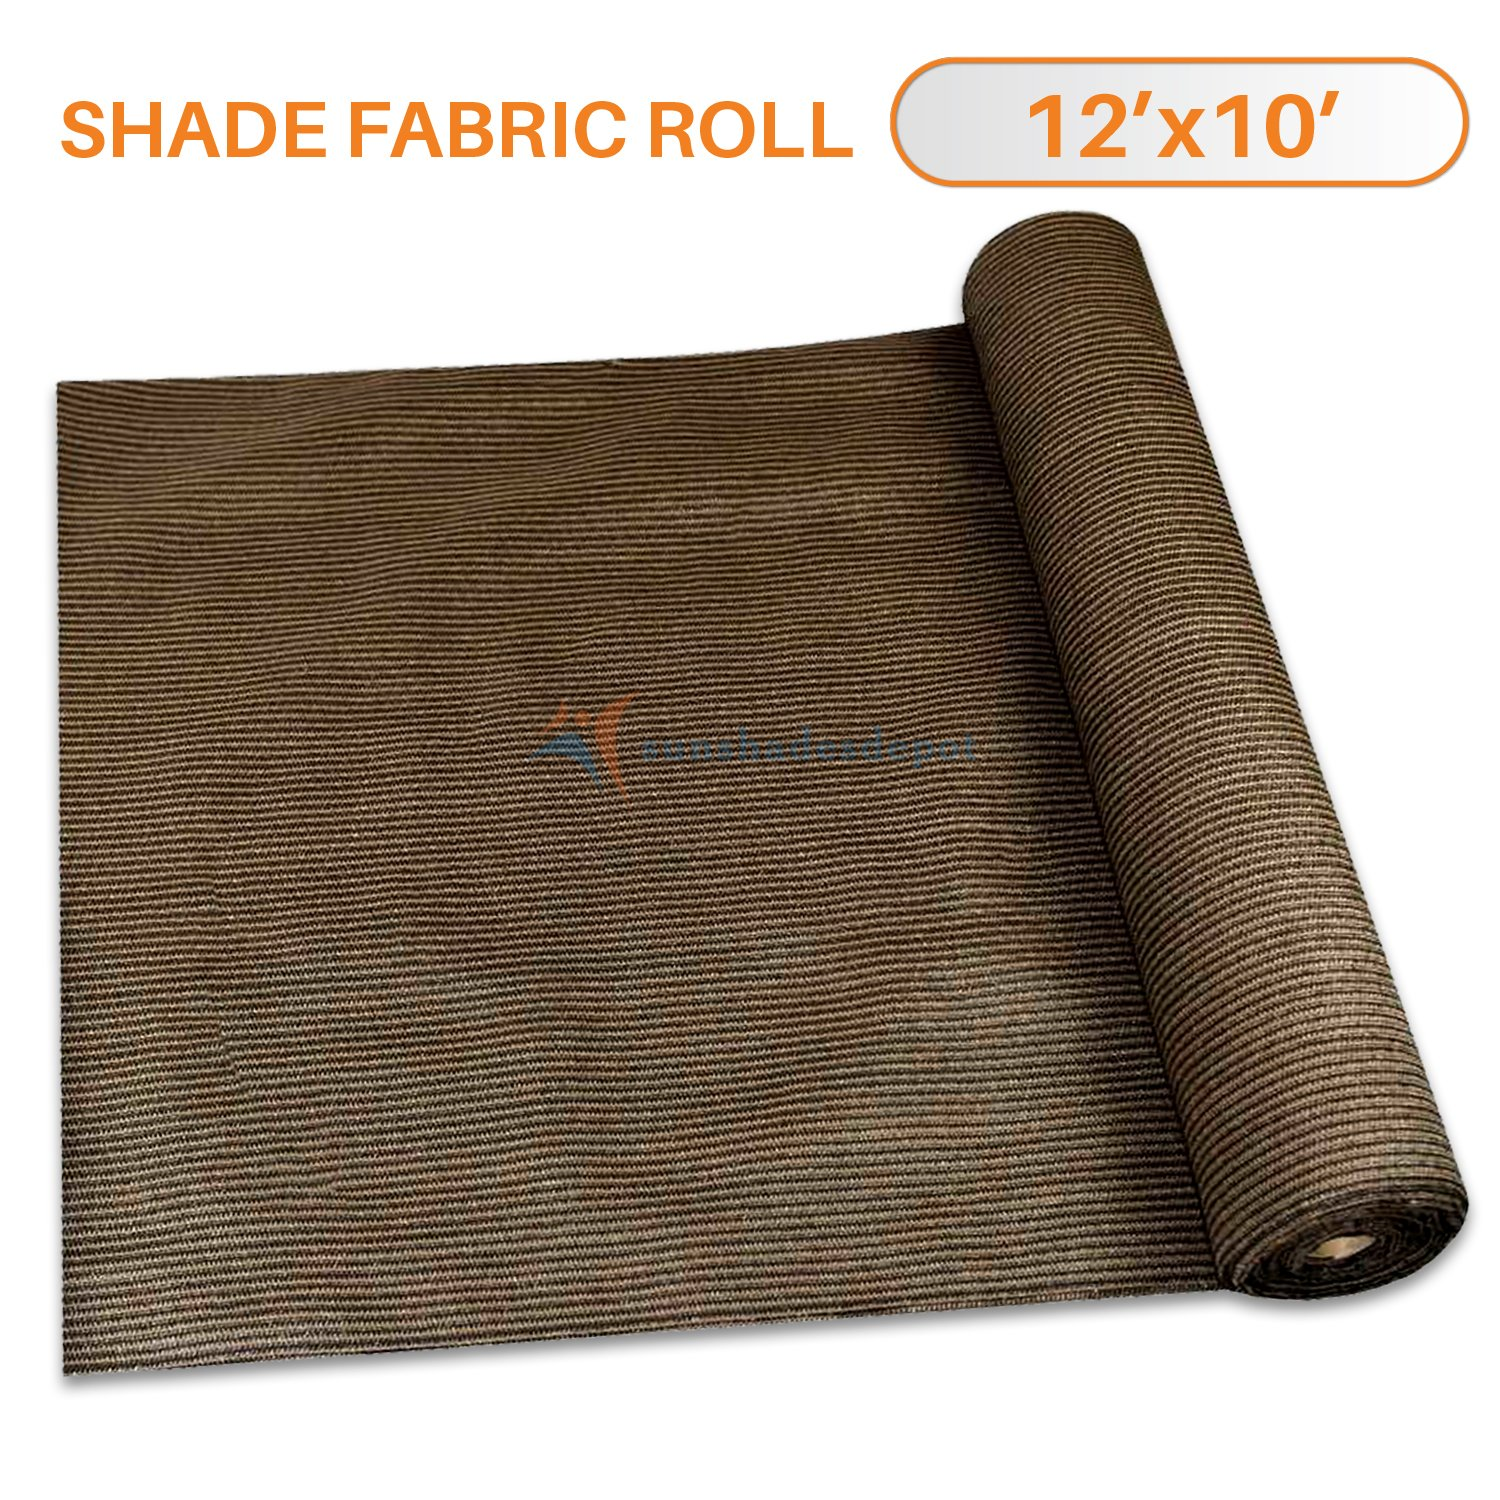 Sunshades Depot 12' x 10' Shade Cloth 180 GSM HDPE Brown Fabric Roll Up to 95% Blockage UV Resistant Mesh Net